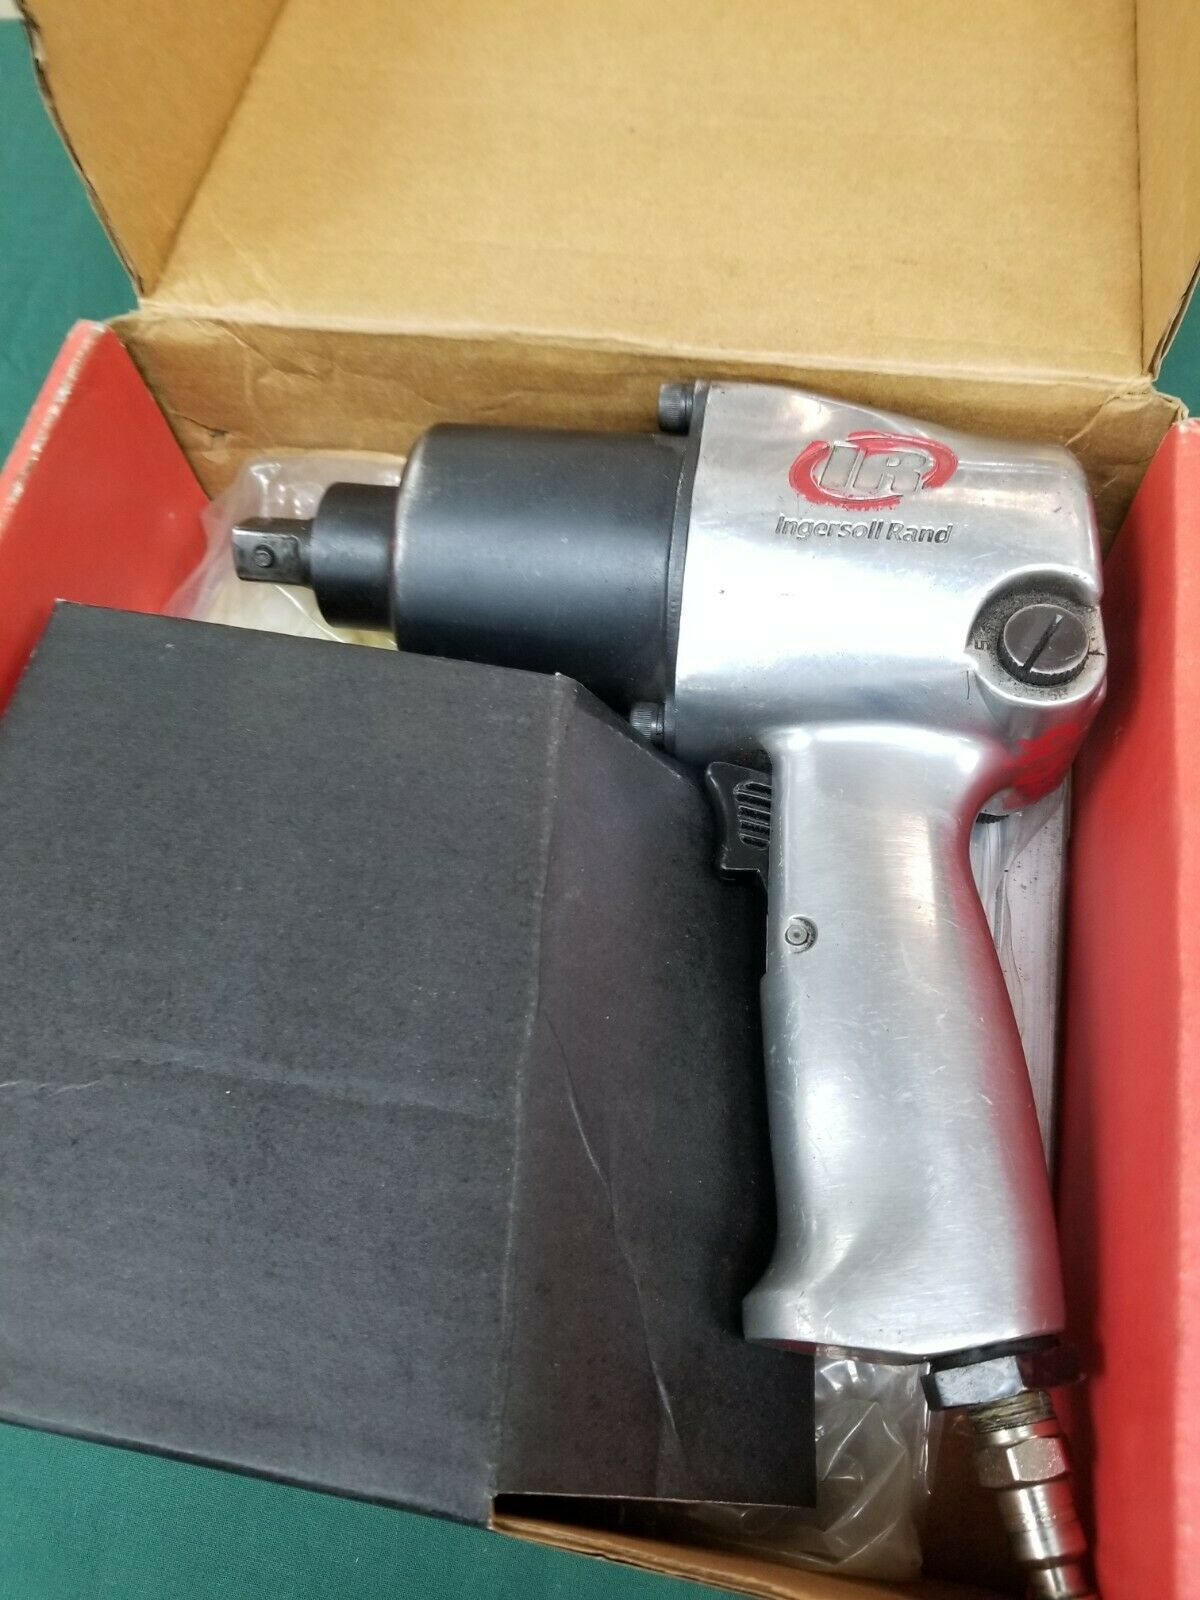 2705P1 westgastoniamusic Ingersoll Rand 2705P1 Air Impact Wrench,1/2 In. Dr.,8500 Rpm